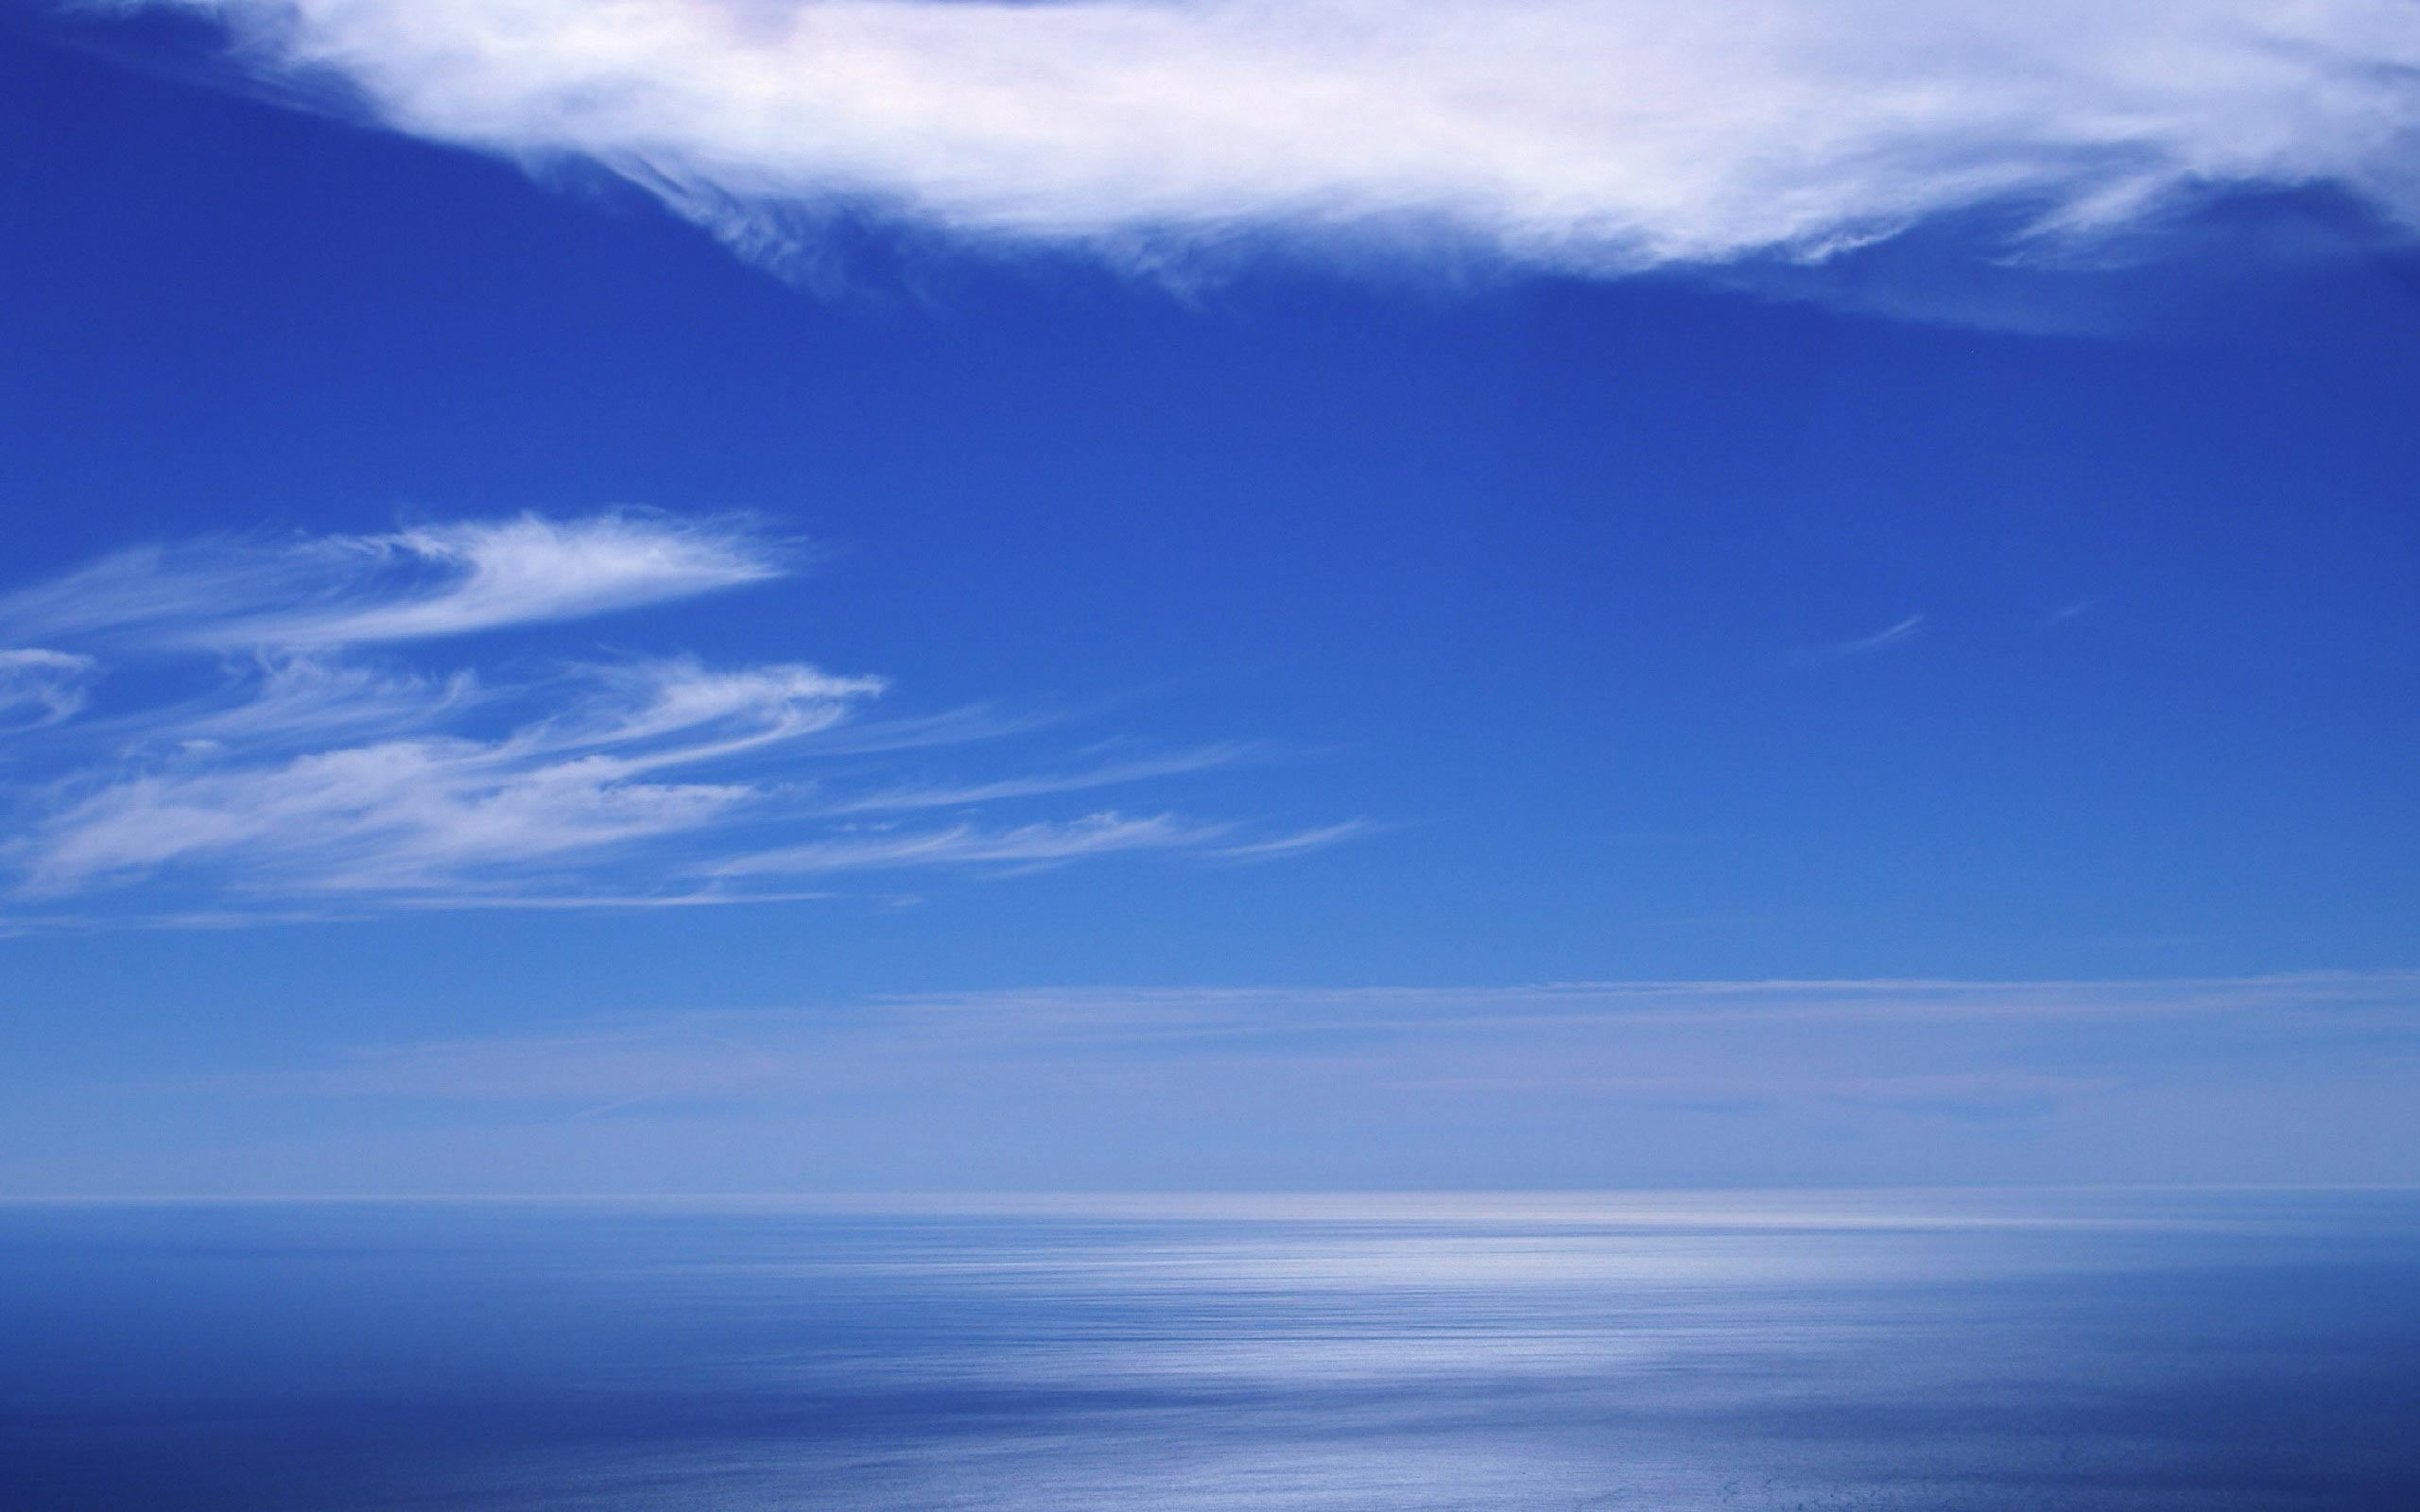 blue sky wallpapers in jpg format for free download